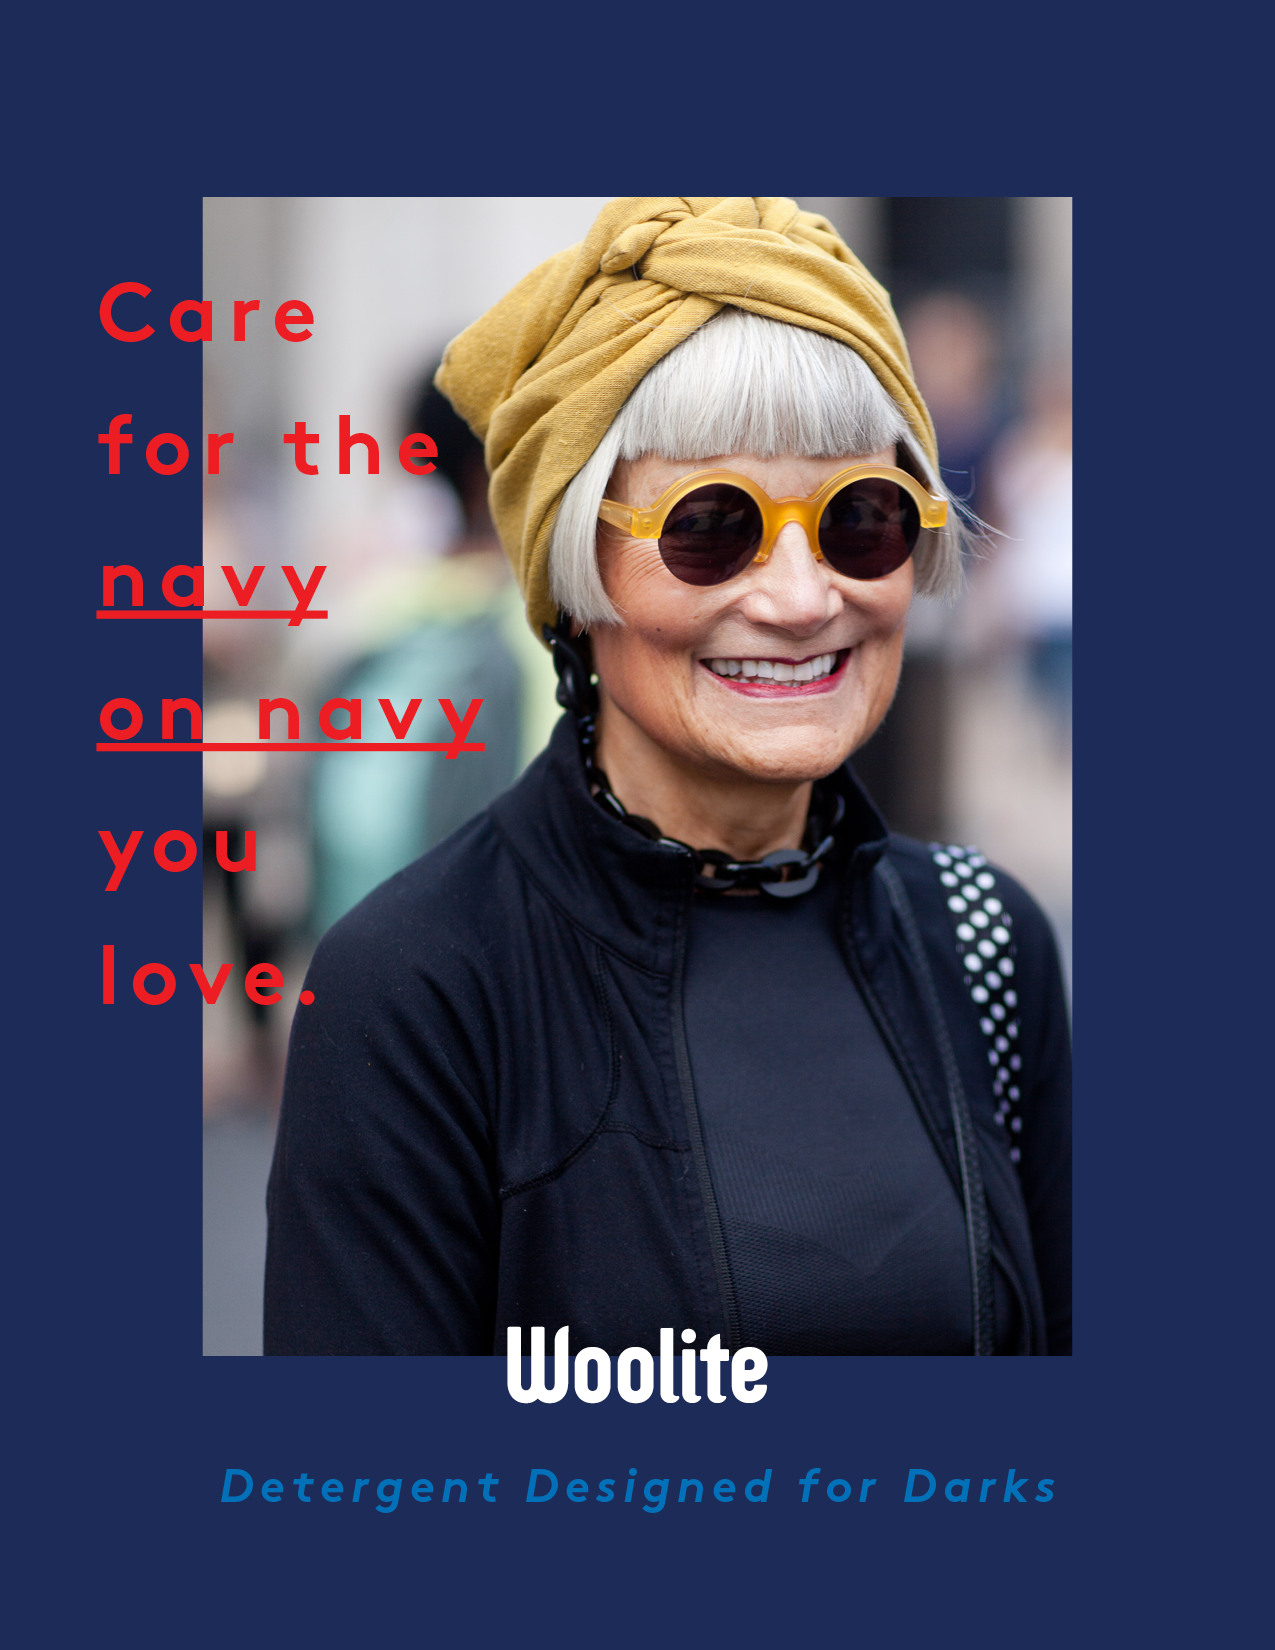 Woolite_Ads_Care_10.9-10